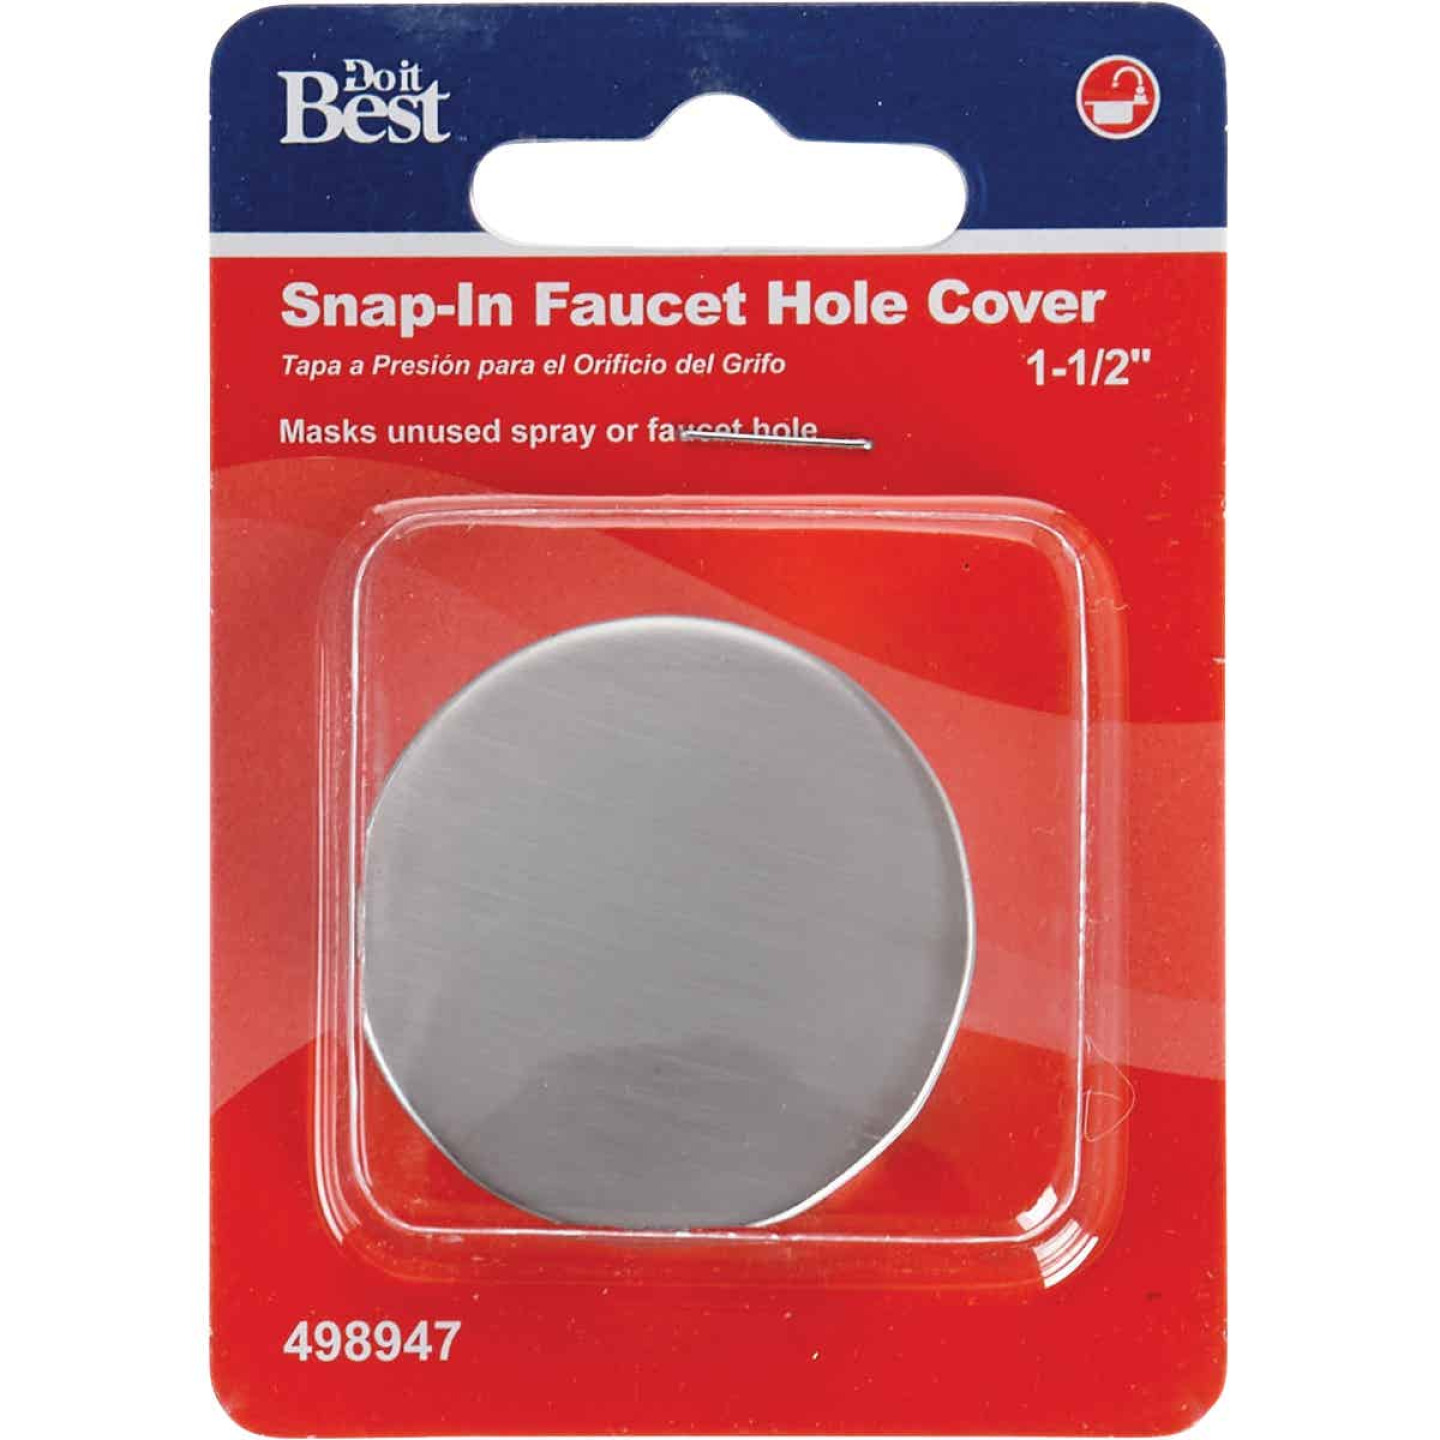 Do it Snap-In 1-1/2 In. Stainless Steel Snap-In Faucet Hole Cover Image 2